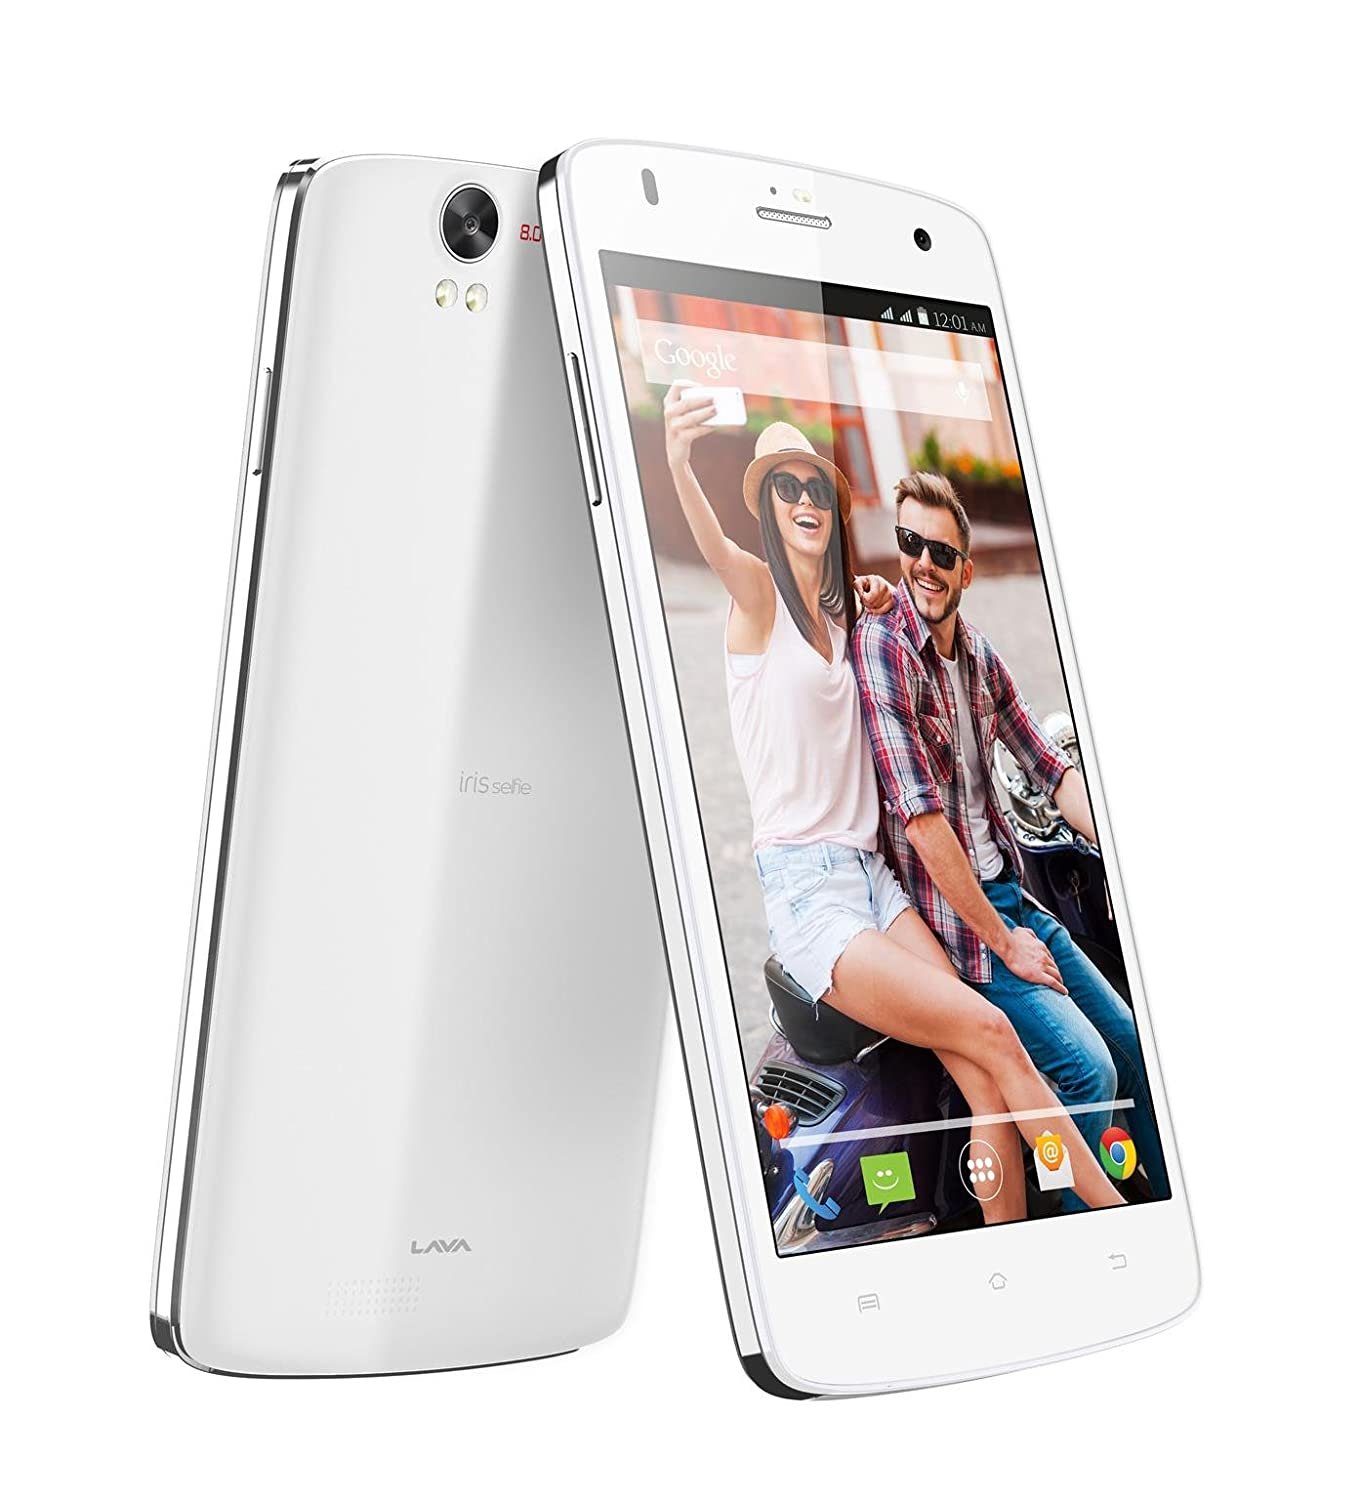 Save Upto 50% Off on budget phones By Amazon | Lava Iris Selfie 50 (White) @ Rs.4,368